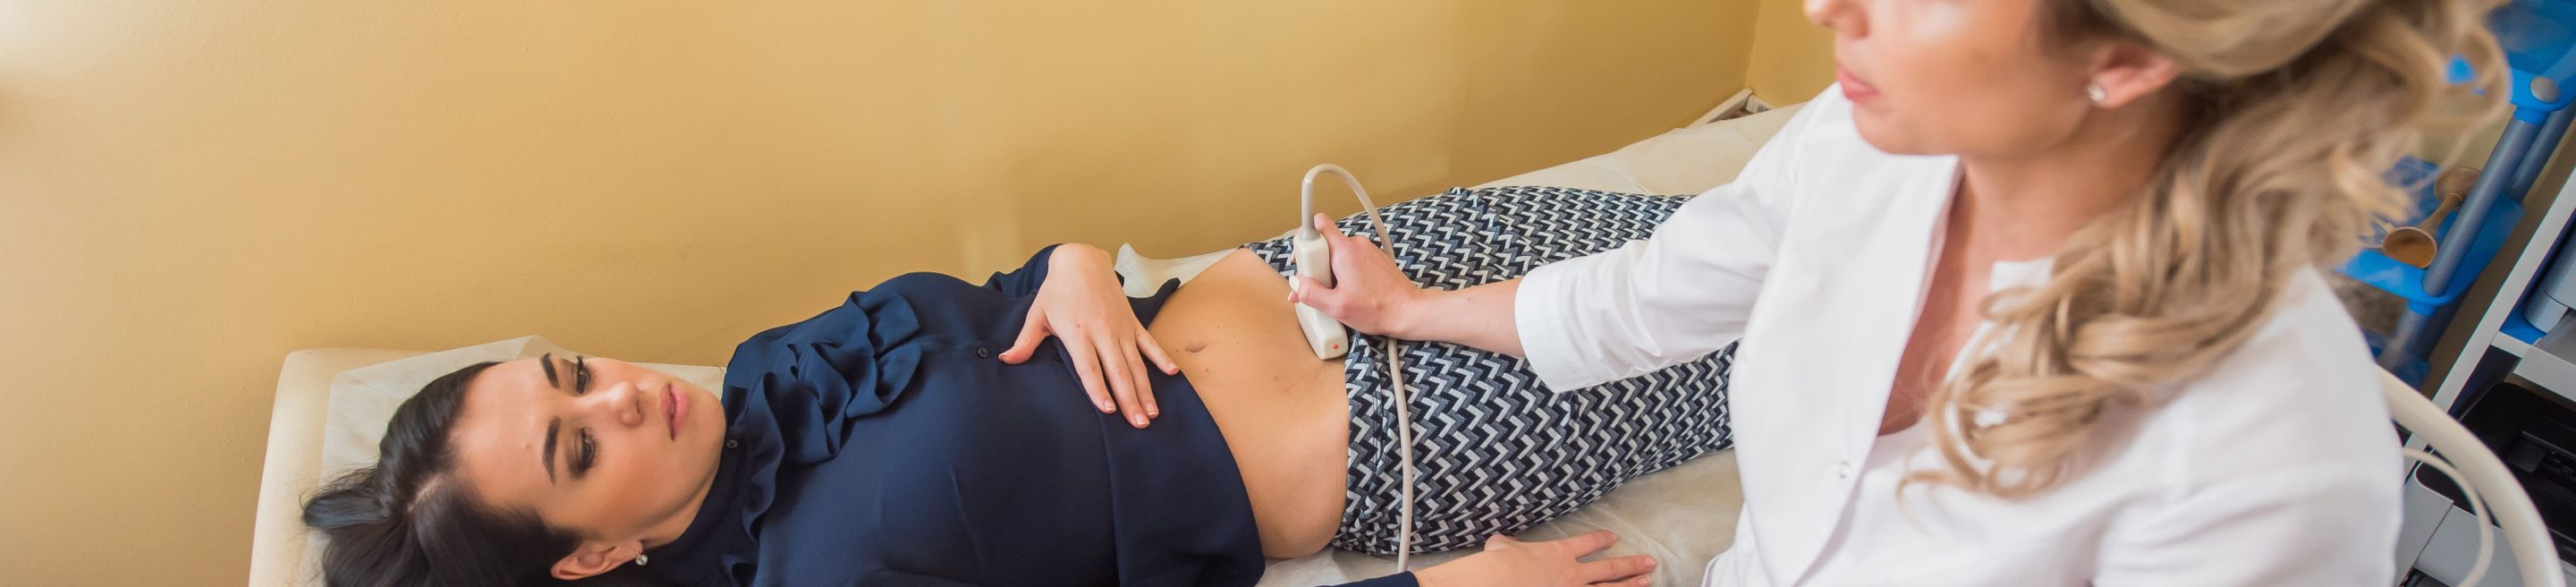 Pregnant woman getting a scan